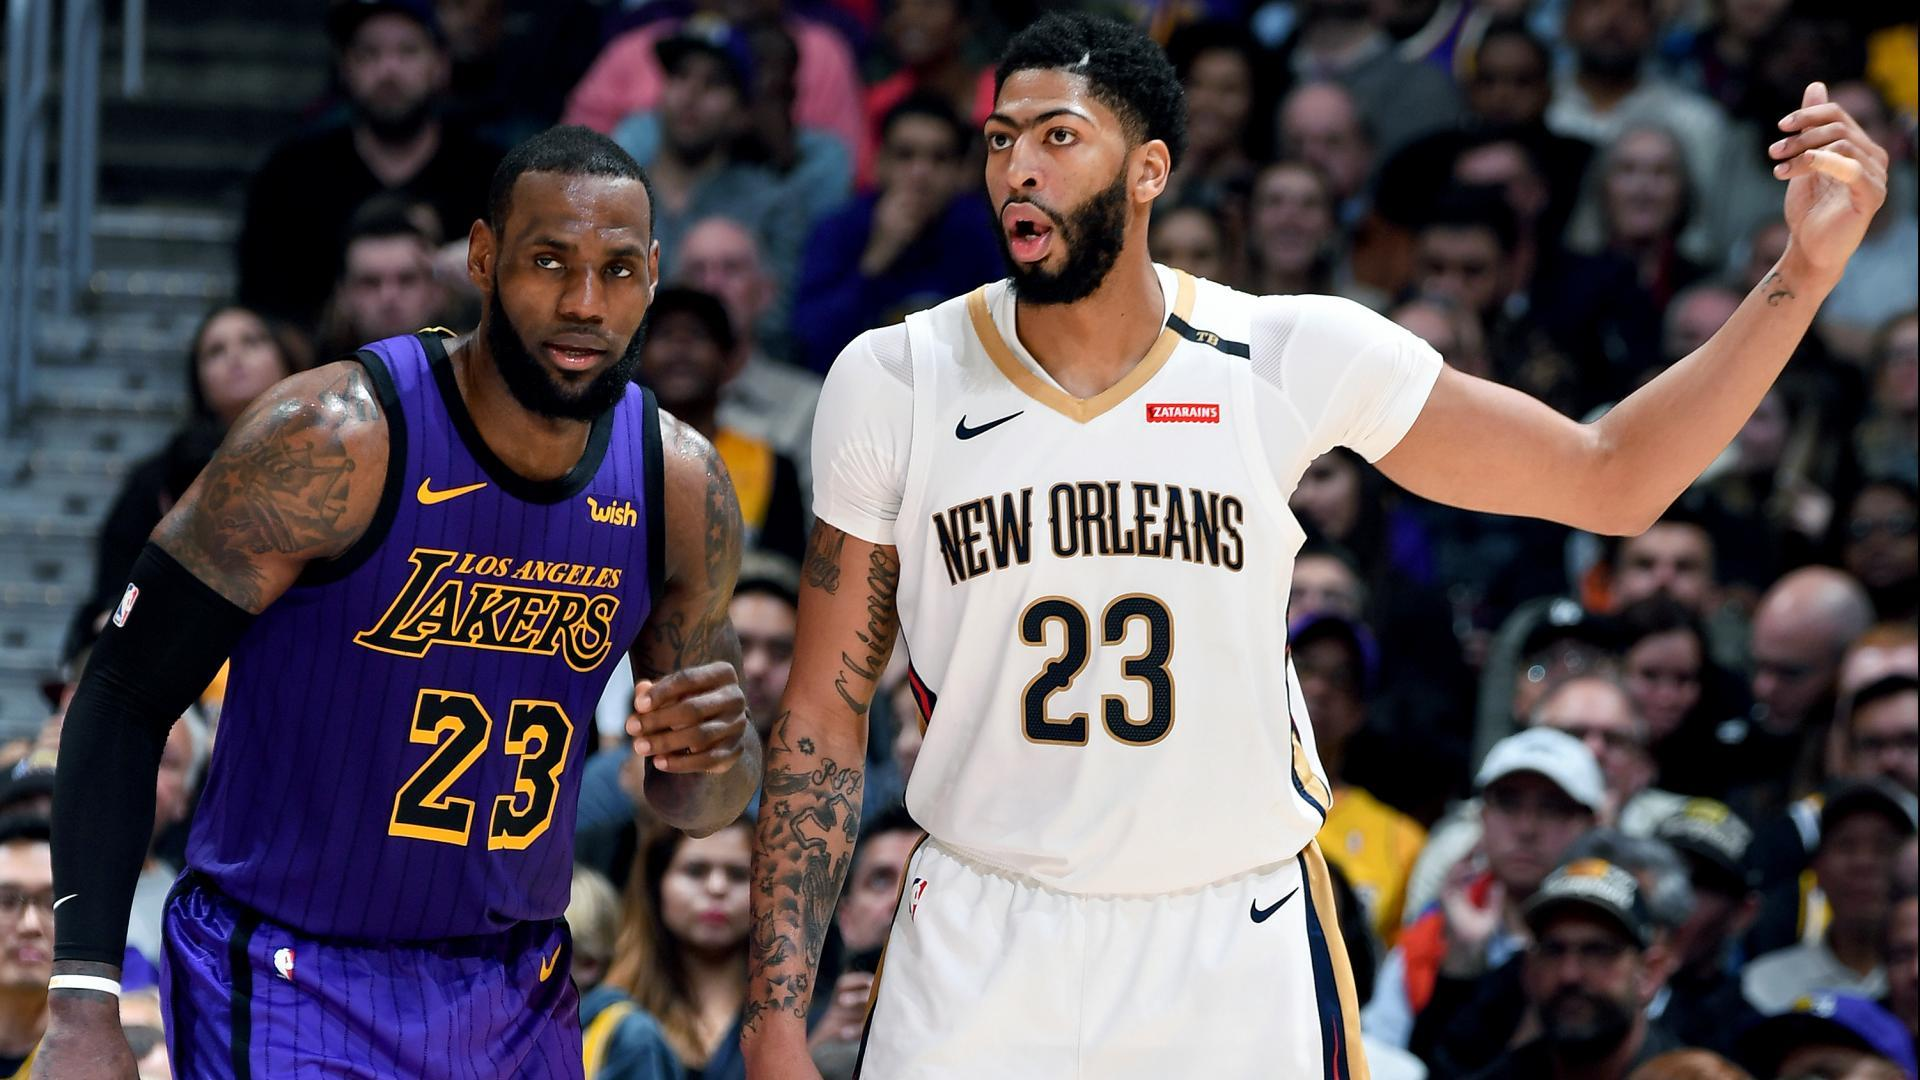 eabe41a0 Seven takeaways from Lakers' reported trade for Anthony Davis | NBA.com